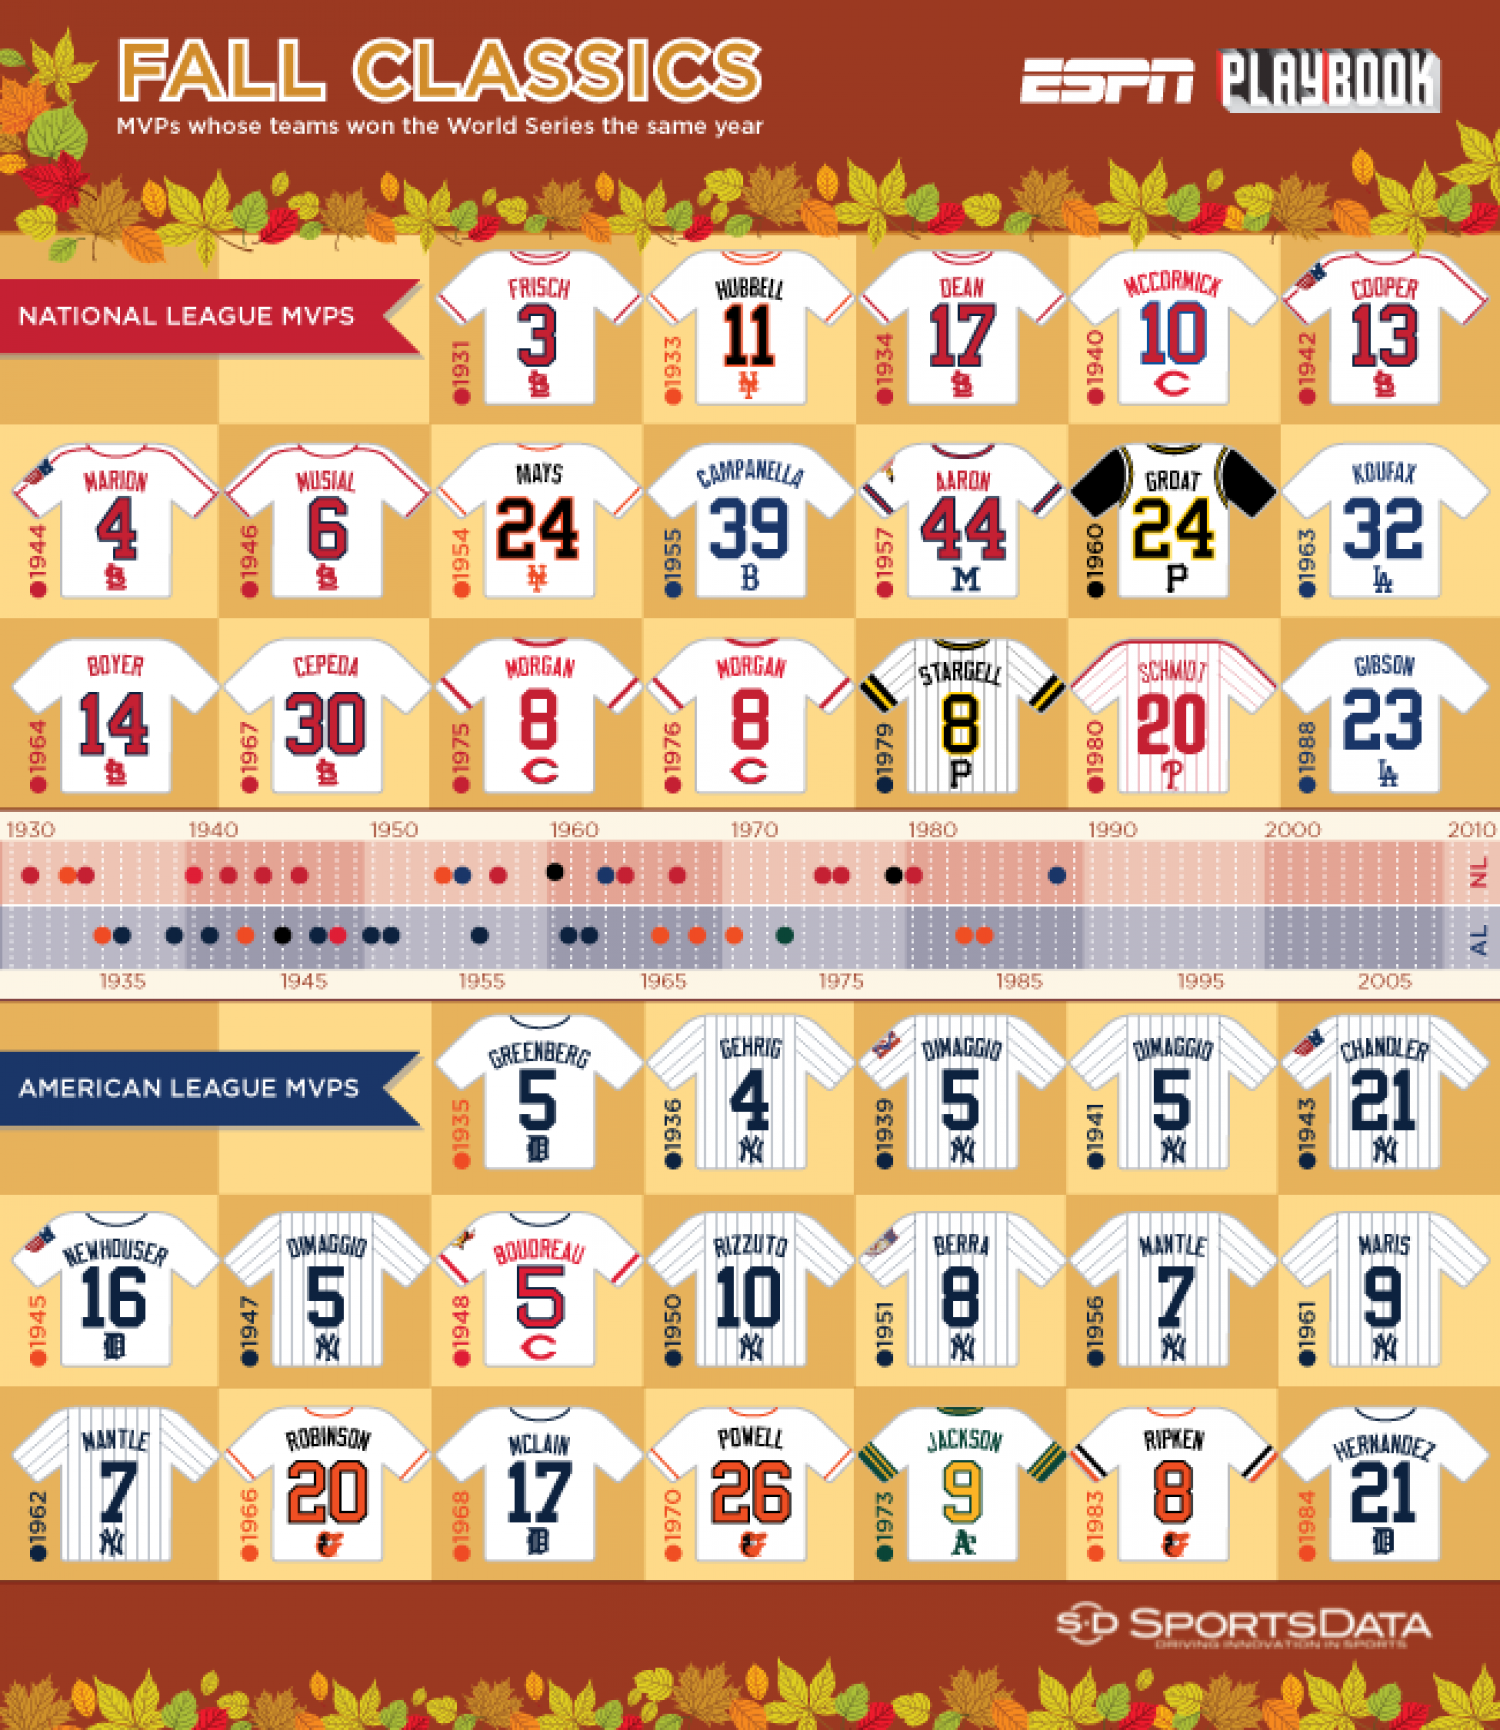 Fall Classic Infographic